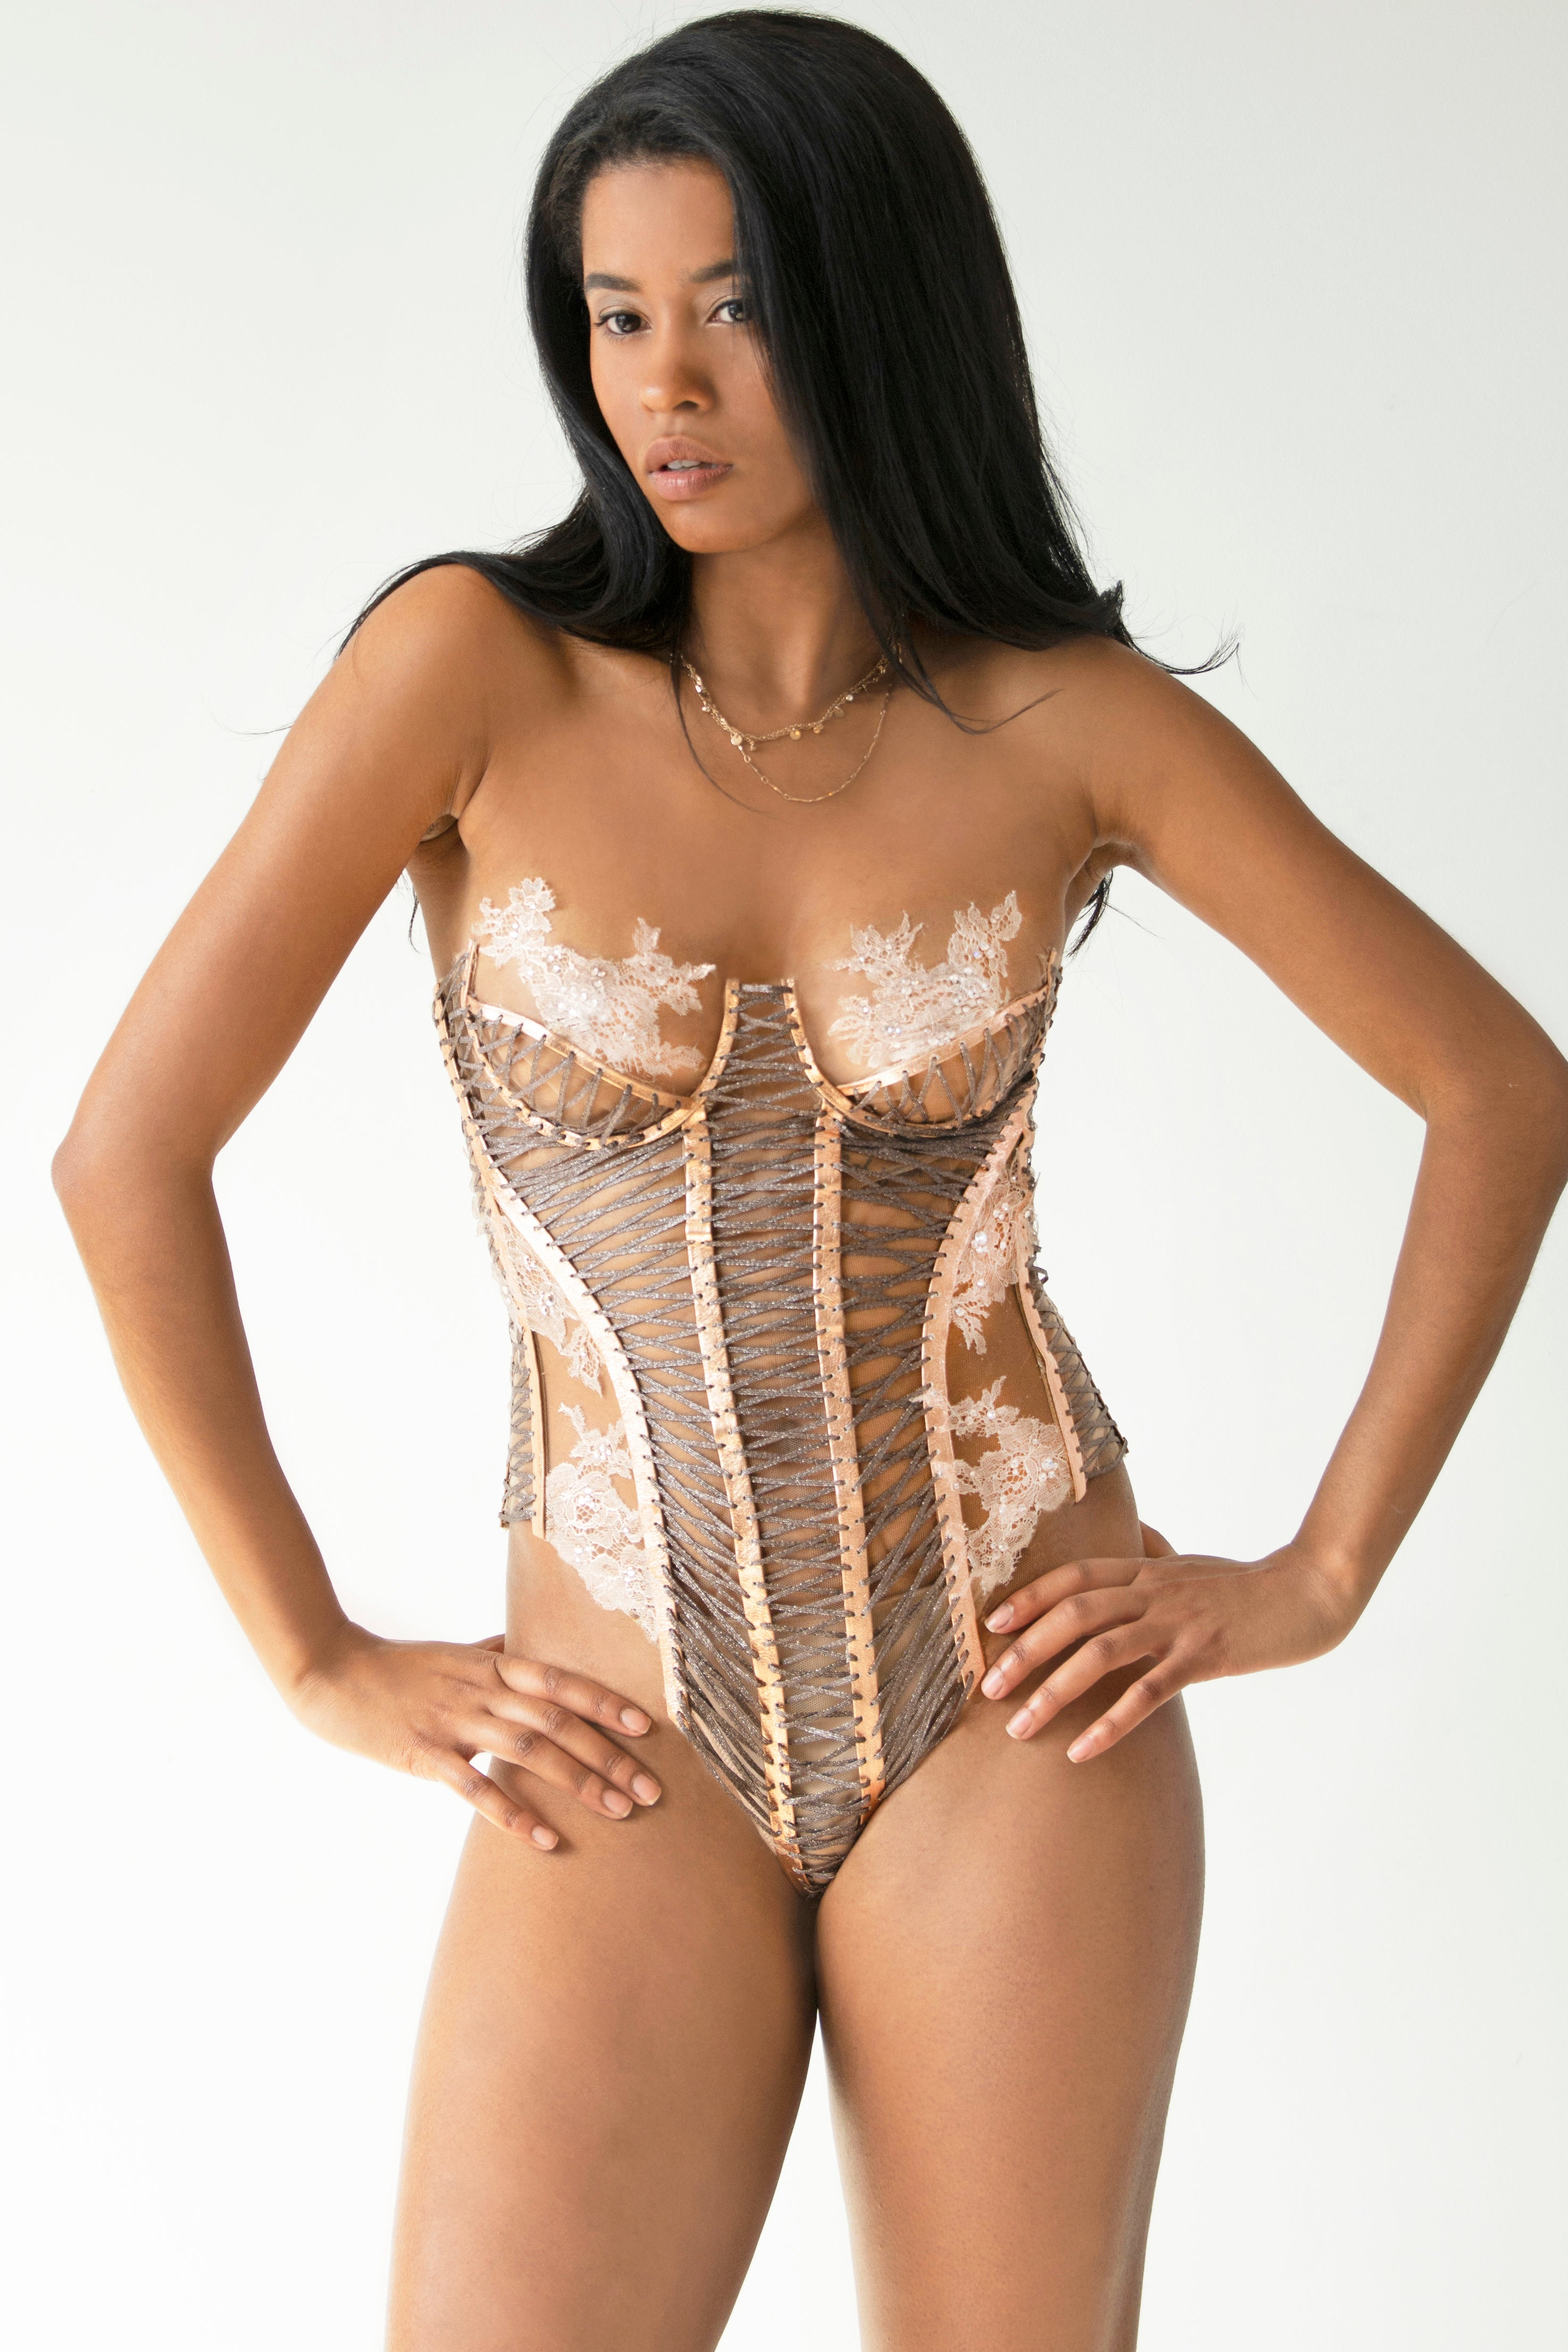 Delicate French lace & Crystal corset-style bodysuit - KxLNewYork